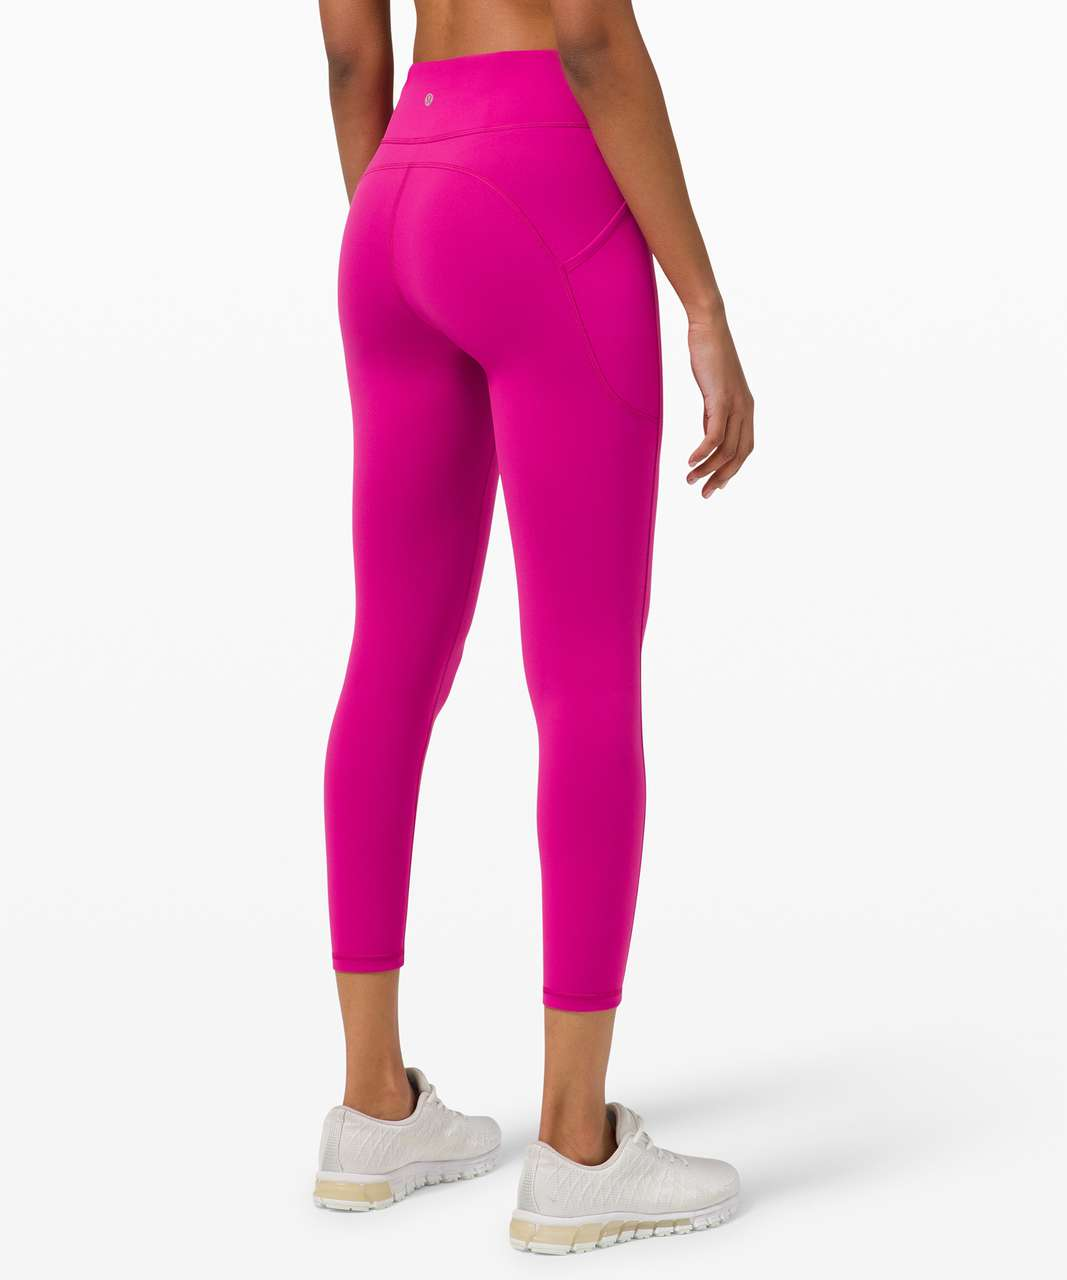 "Lululemon Invigorate High-Rise Tight 25"" - Ripened Raspberry"